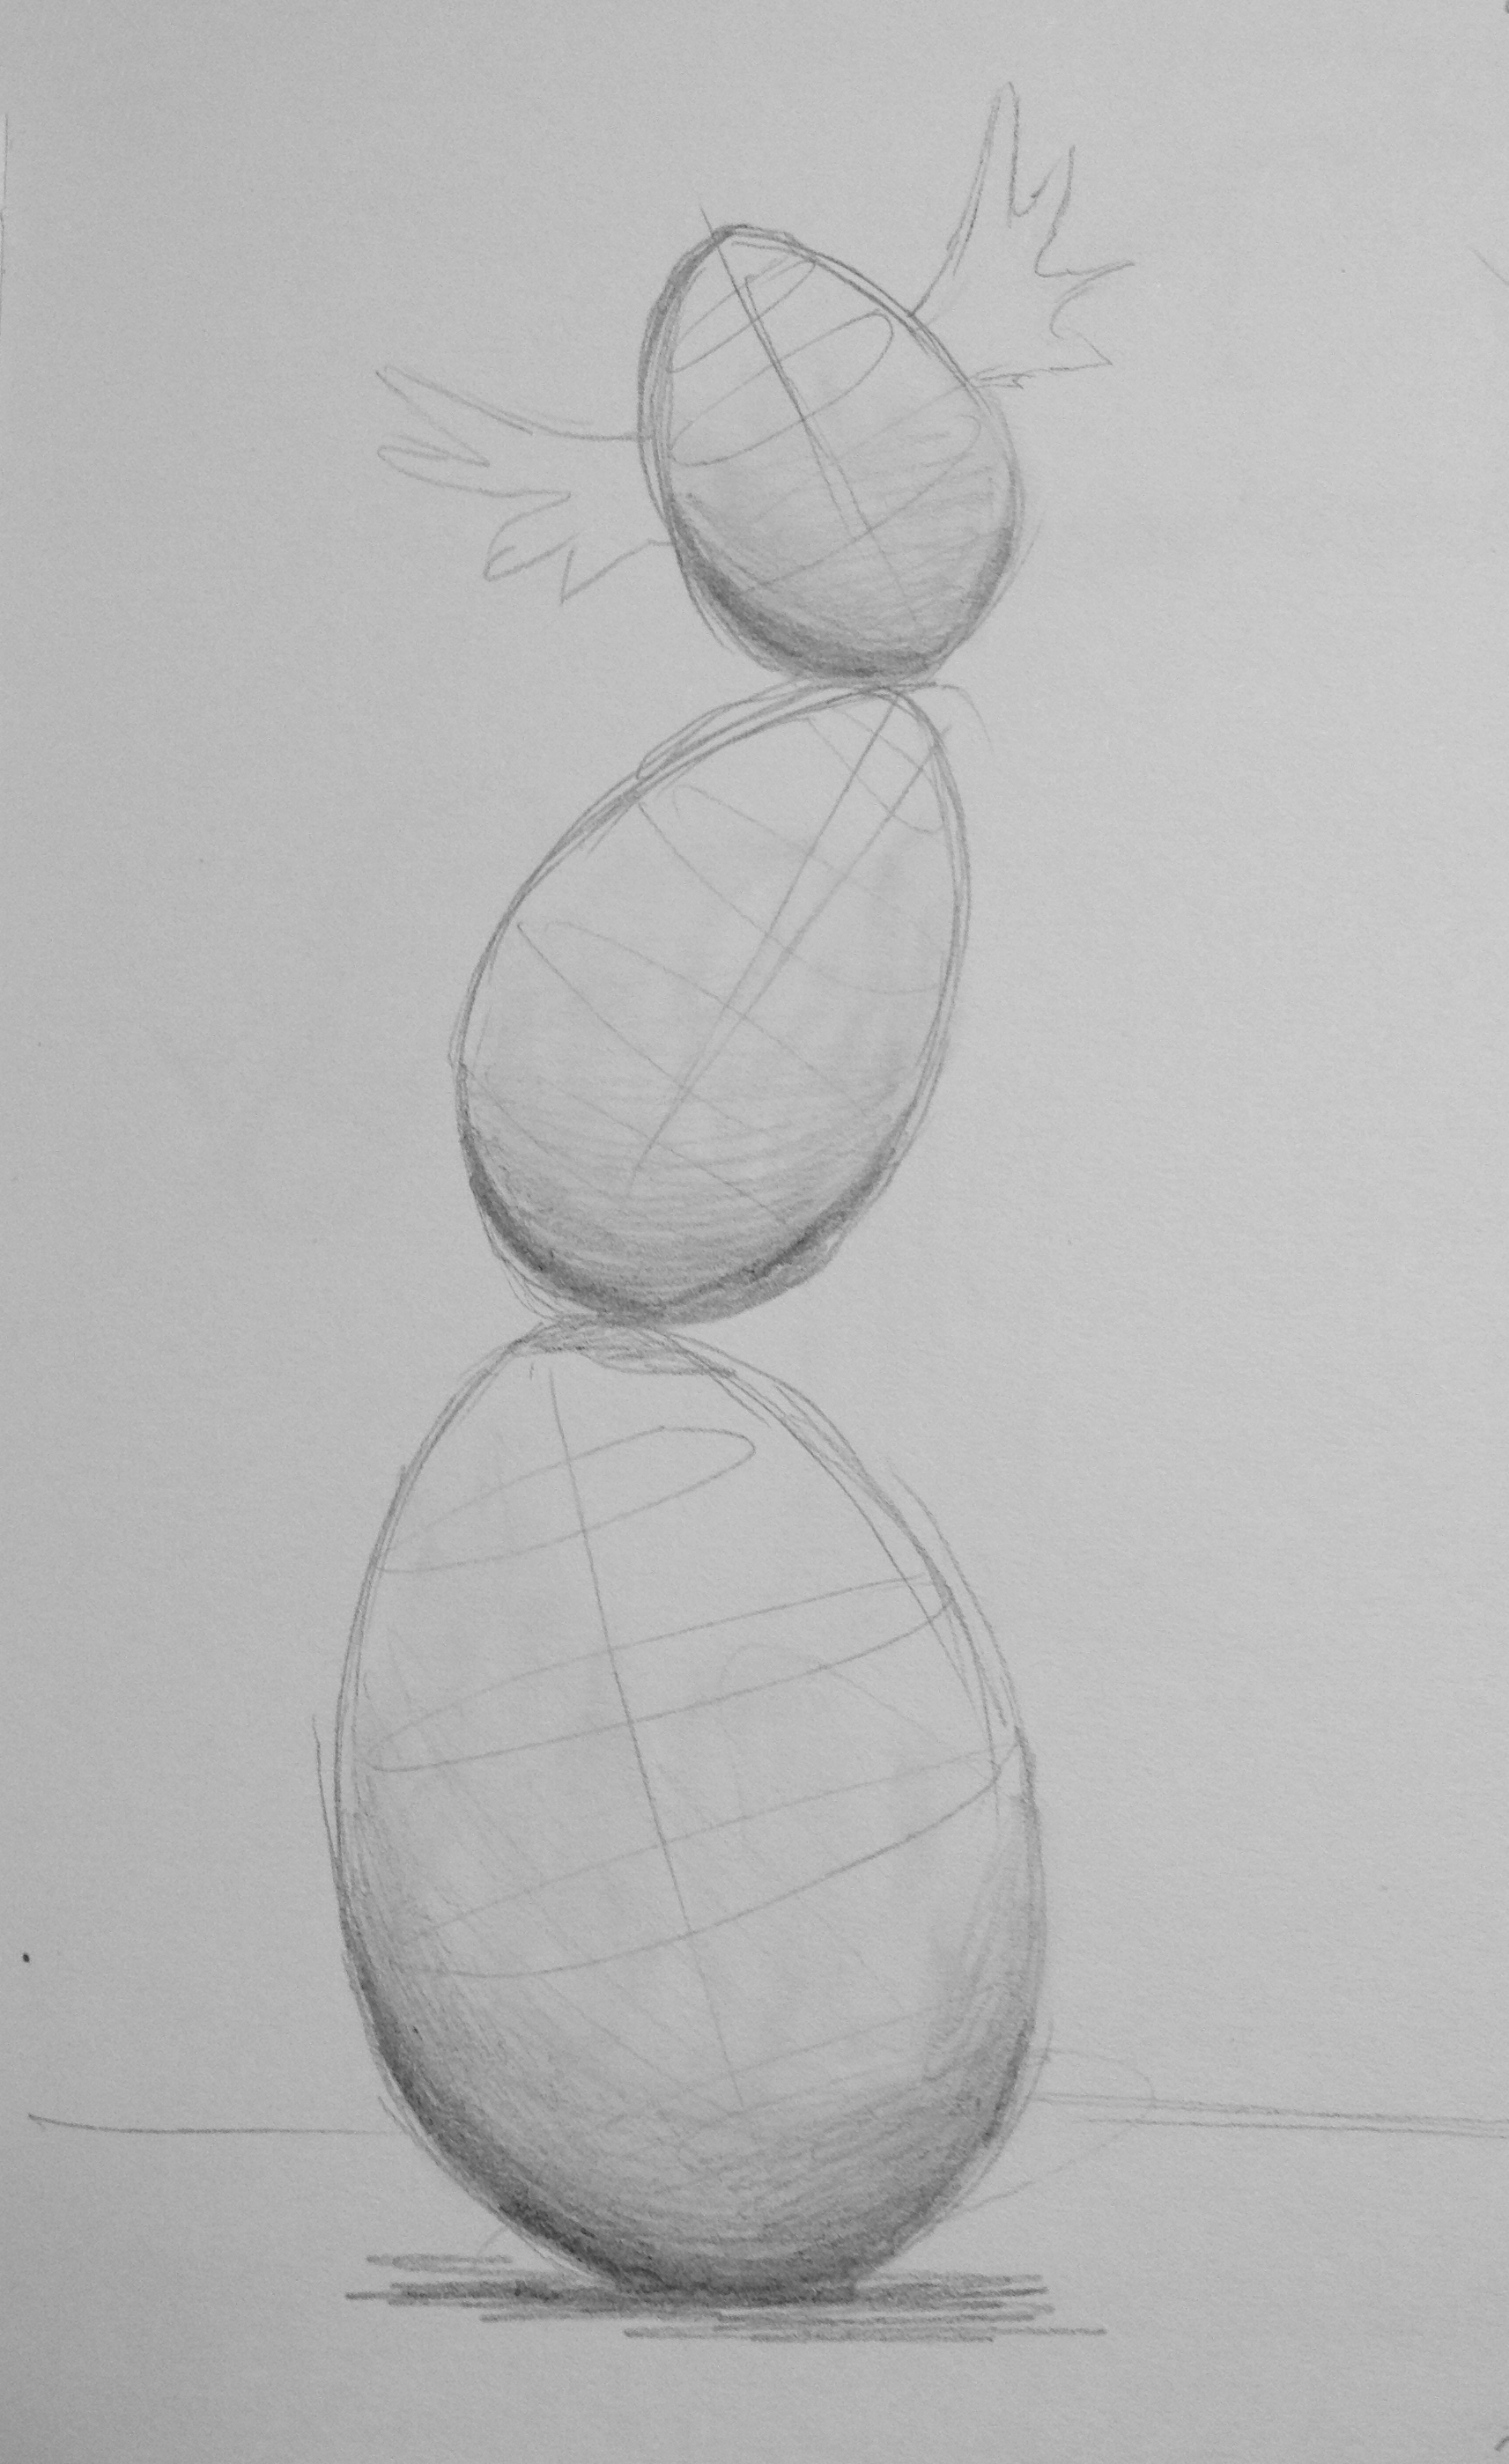 """Eggs""  Pencil on paper 5x7"" September 2014"